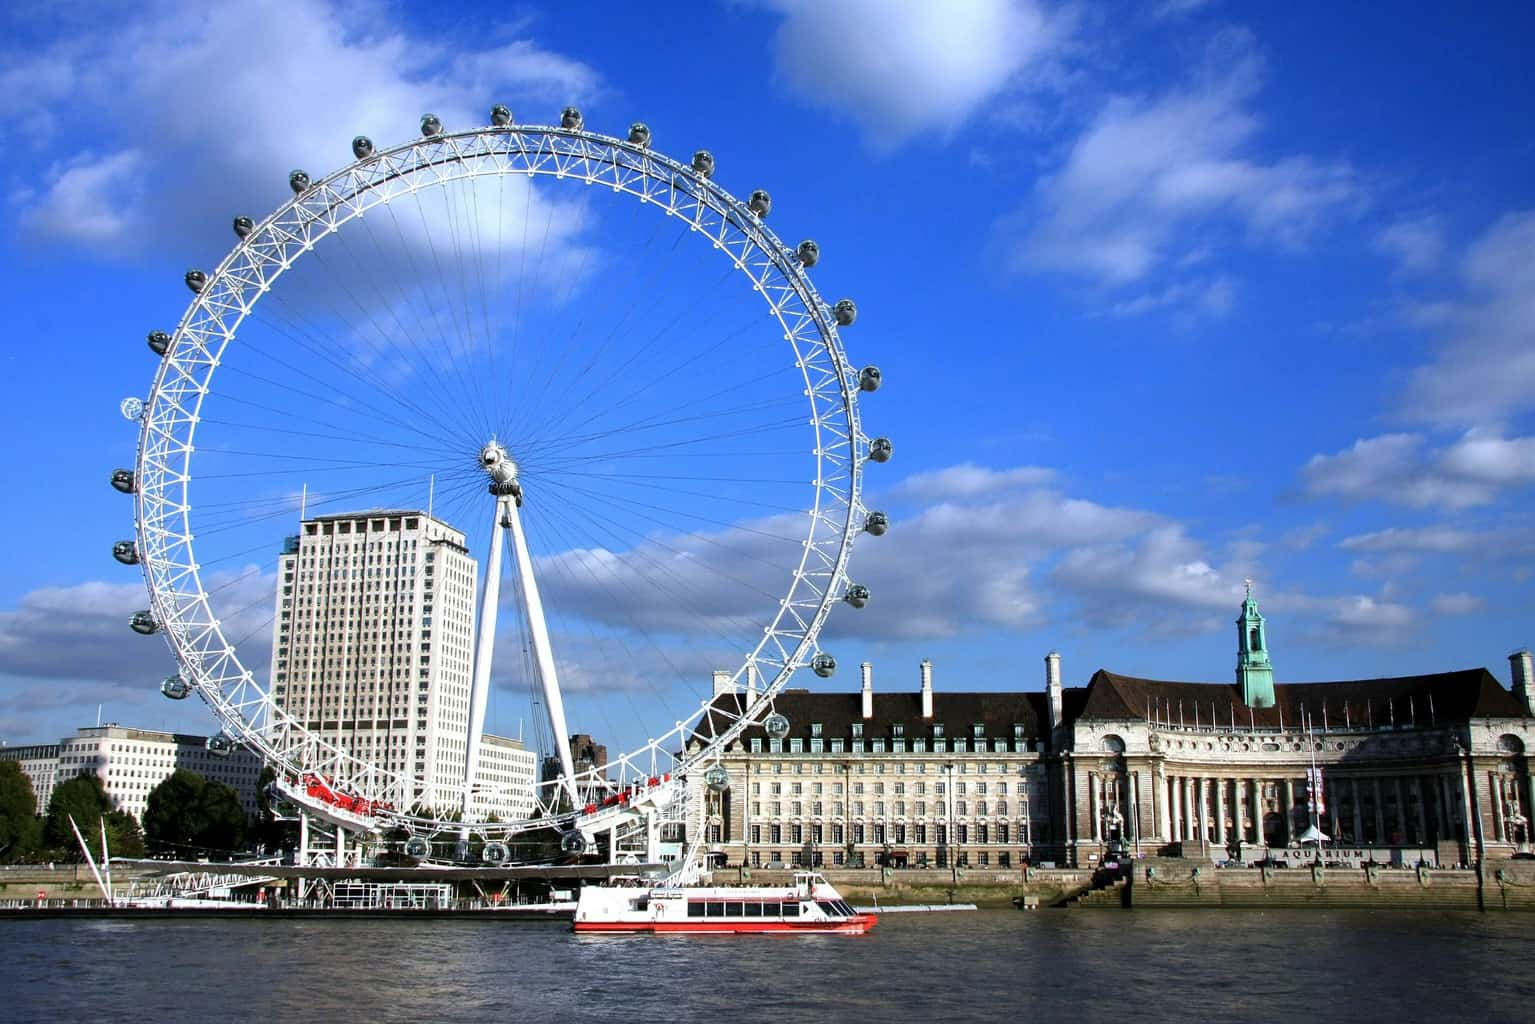 The London Eye with the River Thames in the foreground and blue sky in the background